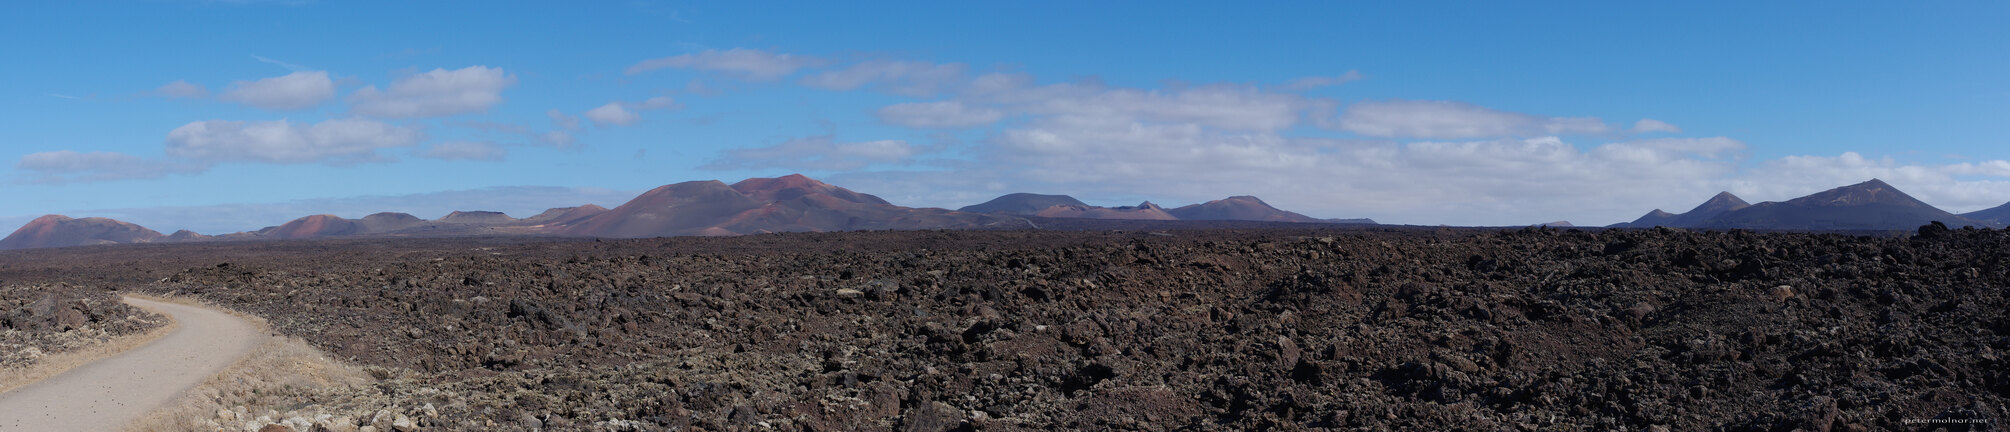 timanfaya-national-park